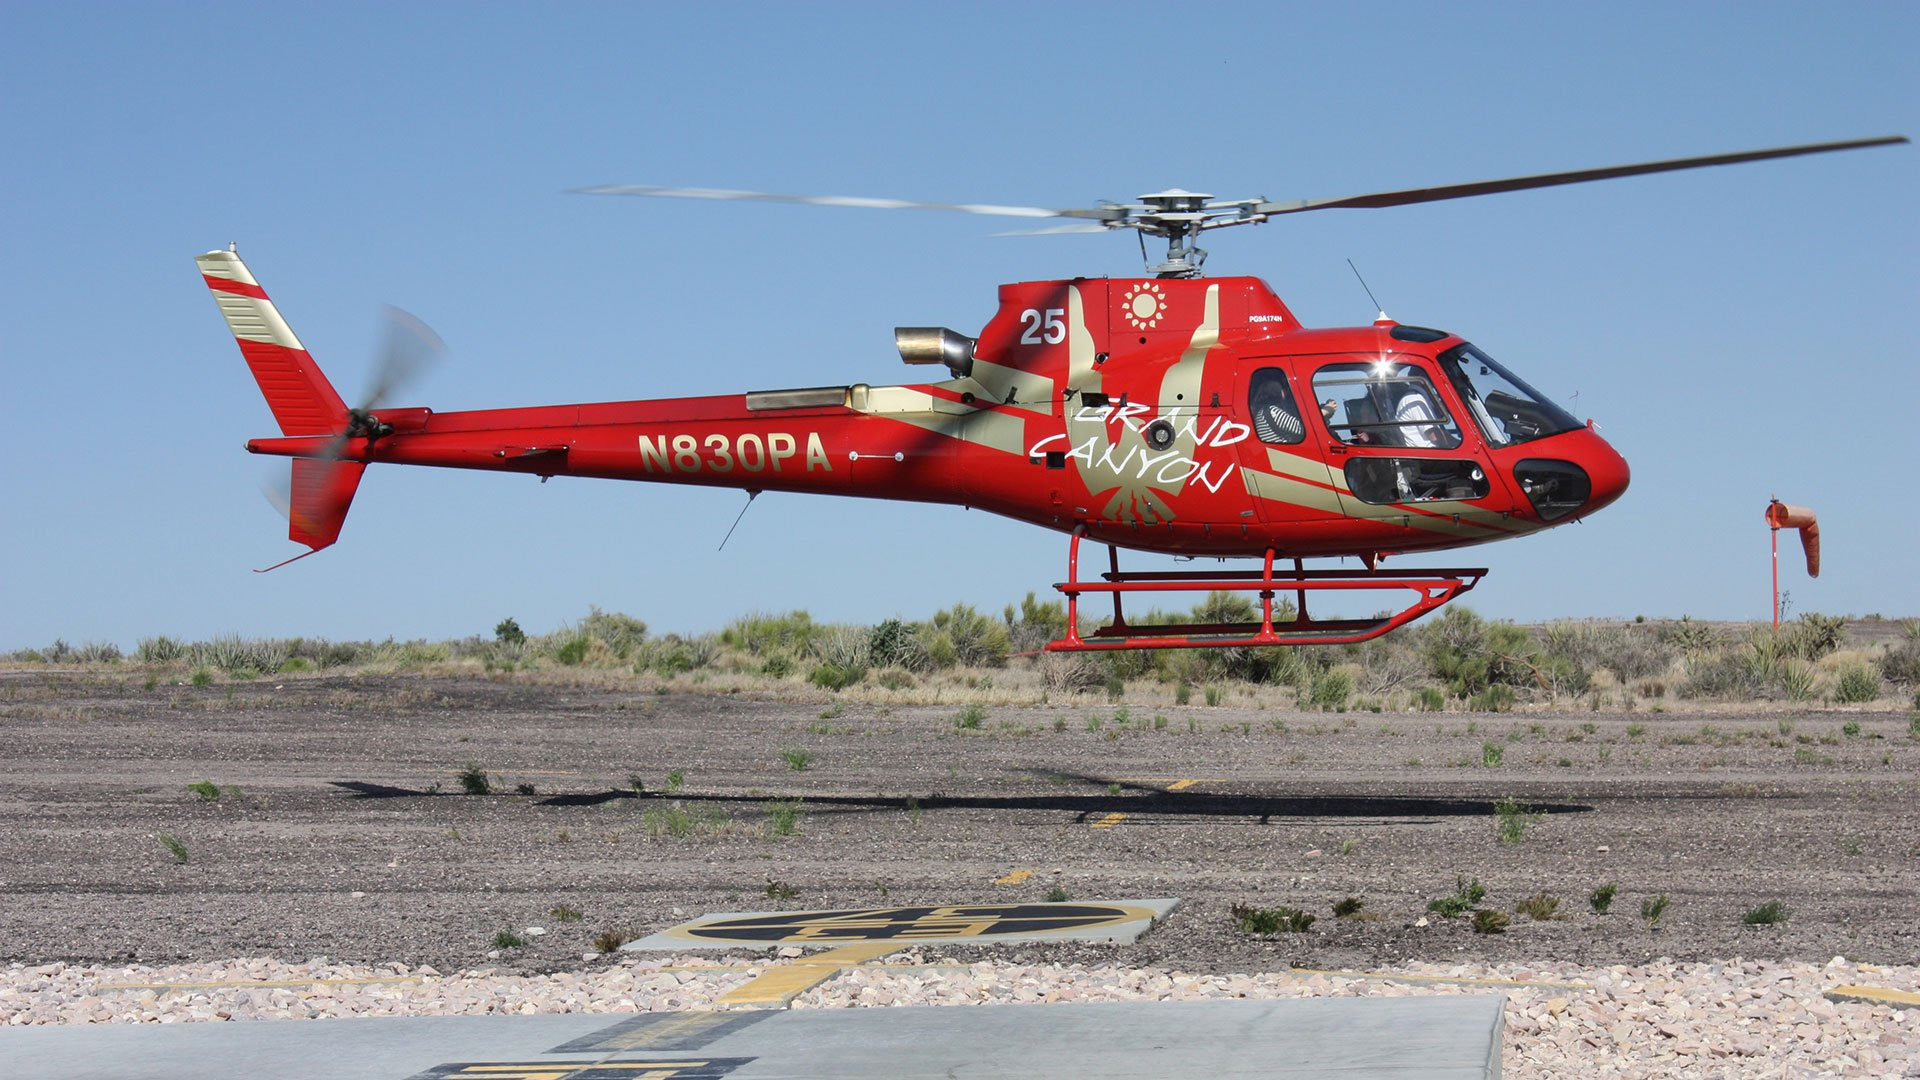 A Bell helicopter sets off on a tour.